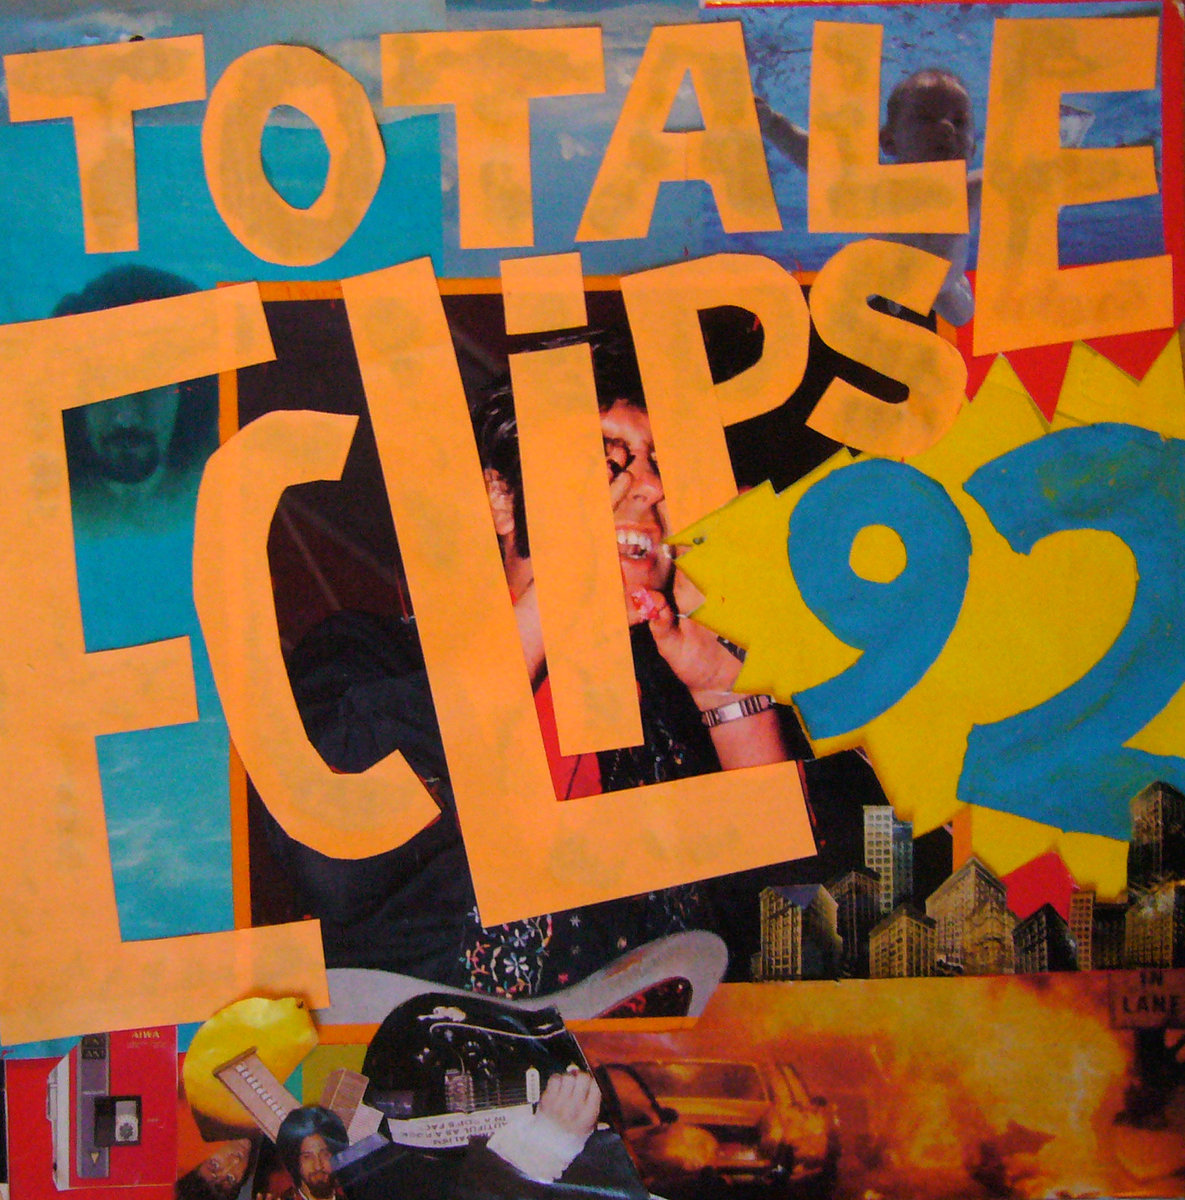 TOTALE ECLIPSE 92 vinyl LP